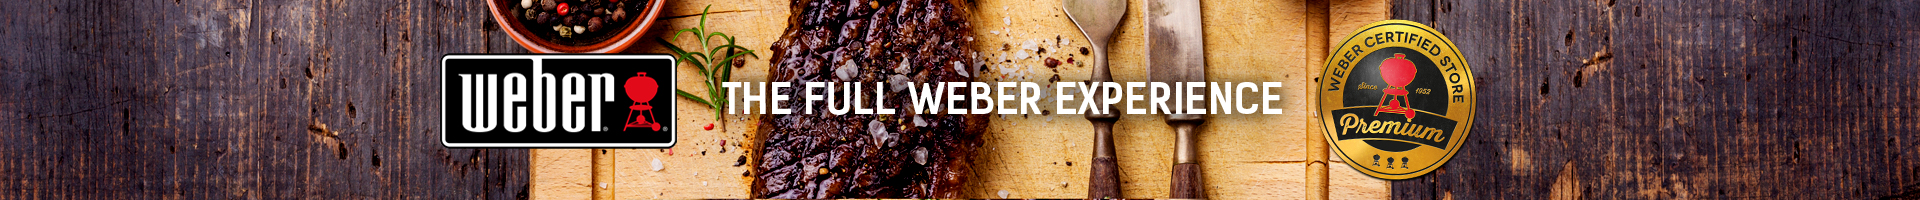 weber barbecues banner